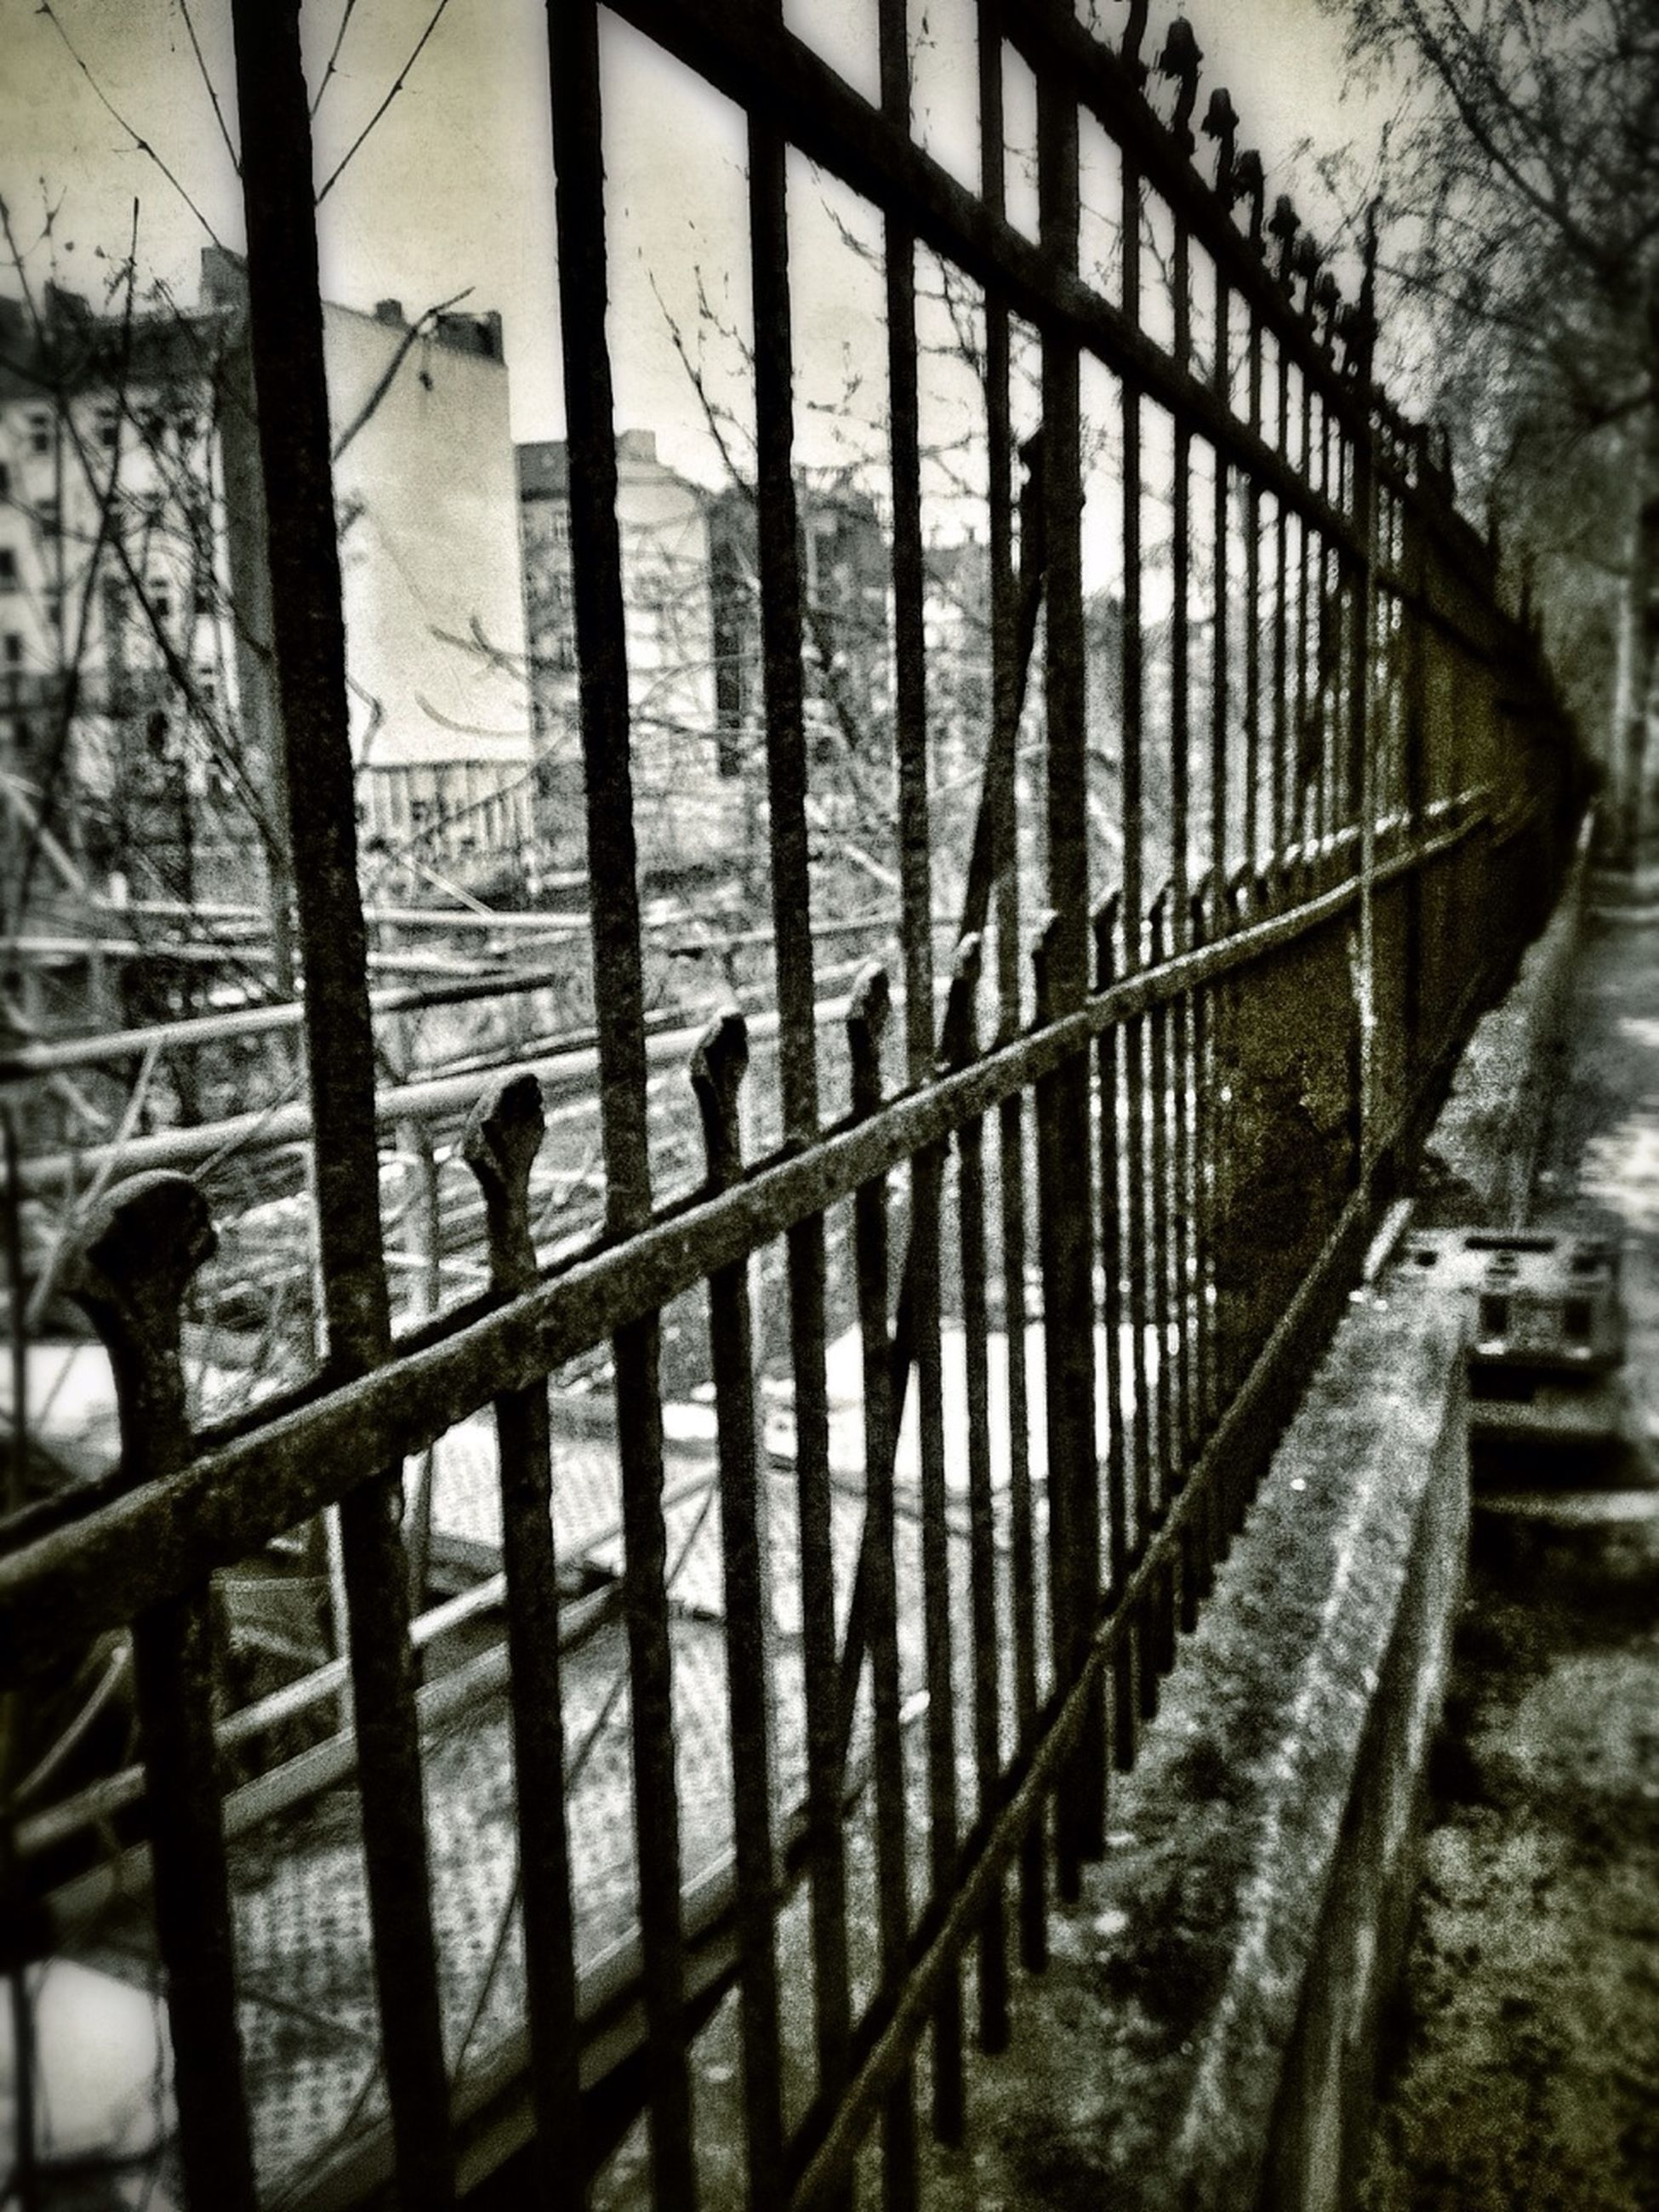 railing, transportation, fence, bridge - man made structure, metal, the way forward, built structure, footbridge, protection, architecture, tree, chainlink fence, sky, connection, safety, incidental people, water, railroad track, sunlight, walking